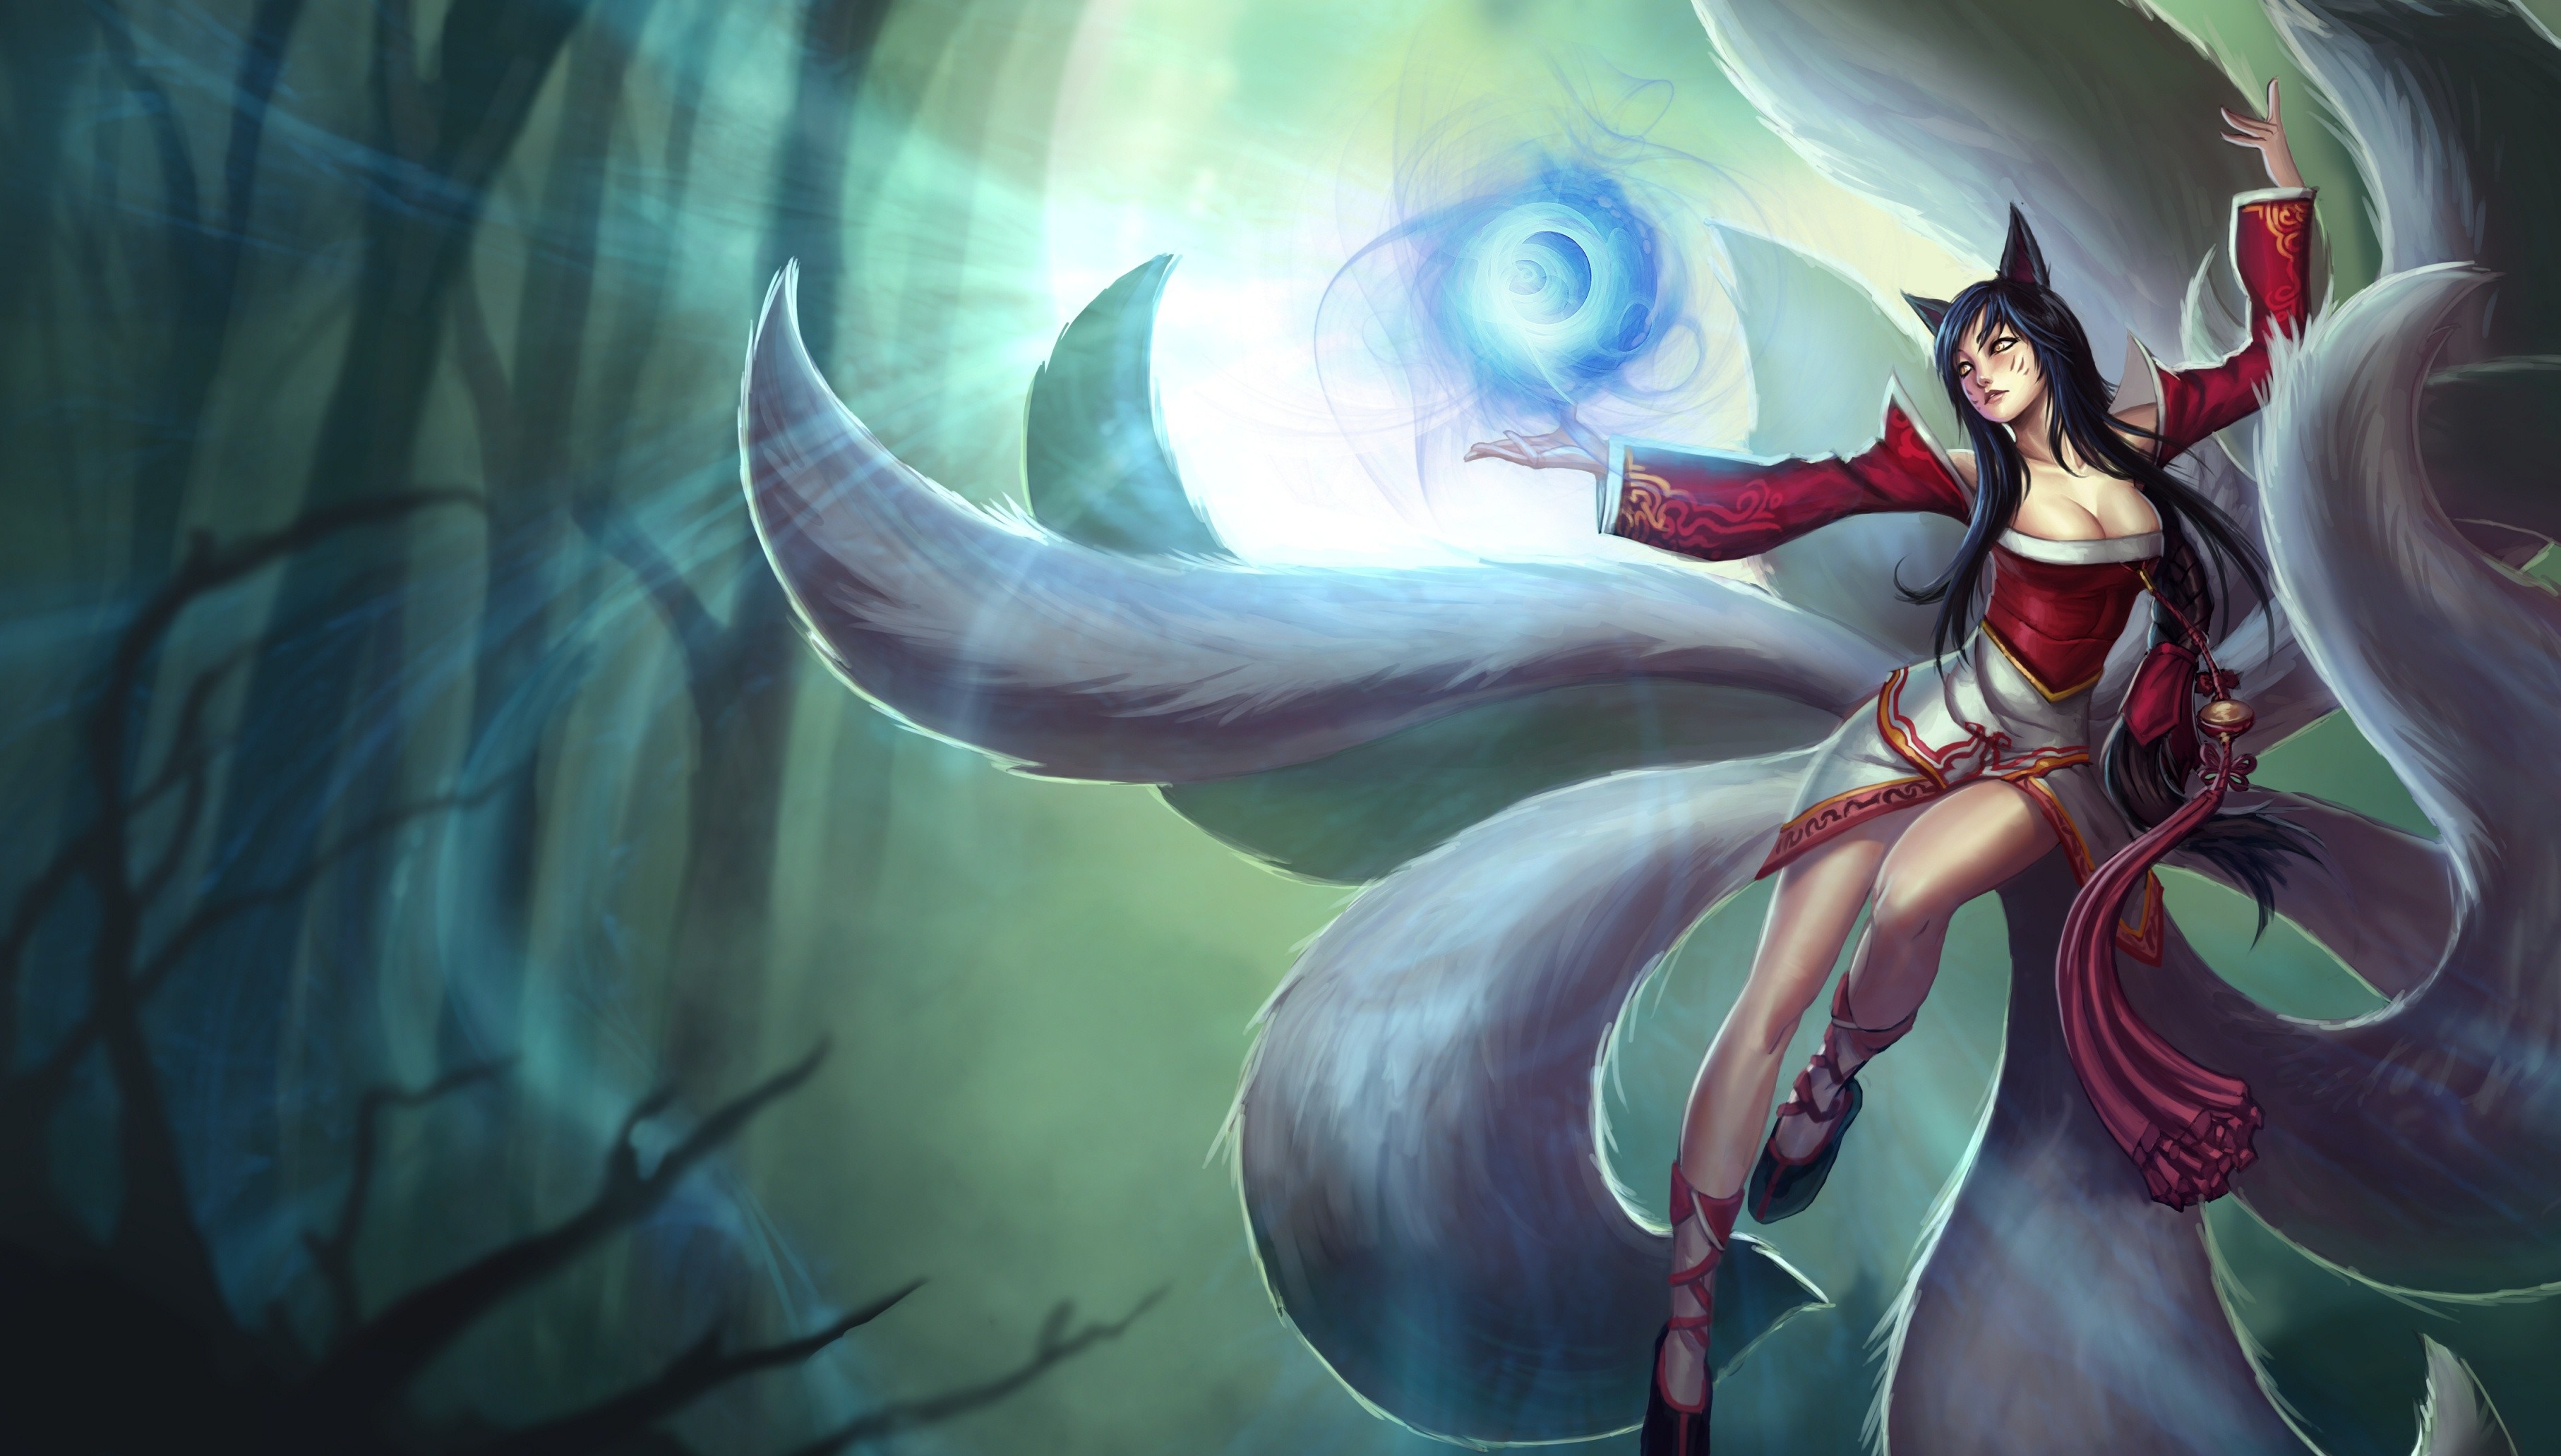 3628x2063 Ahri The Nine Tailed Fox #ConceptArt from the #VideoGame #LeagueOfLegends